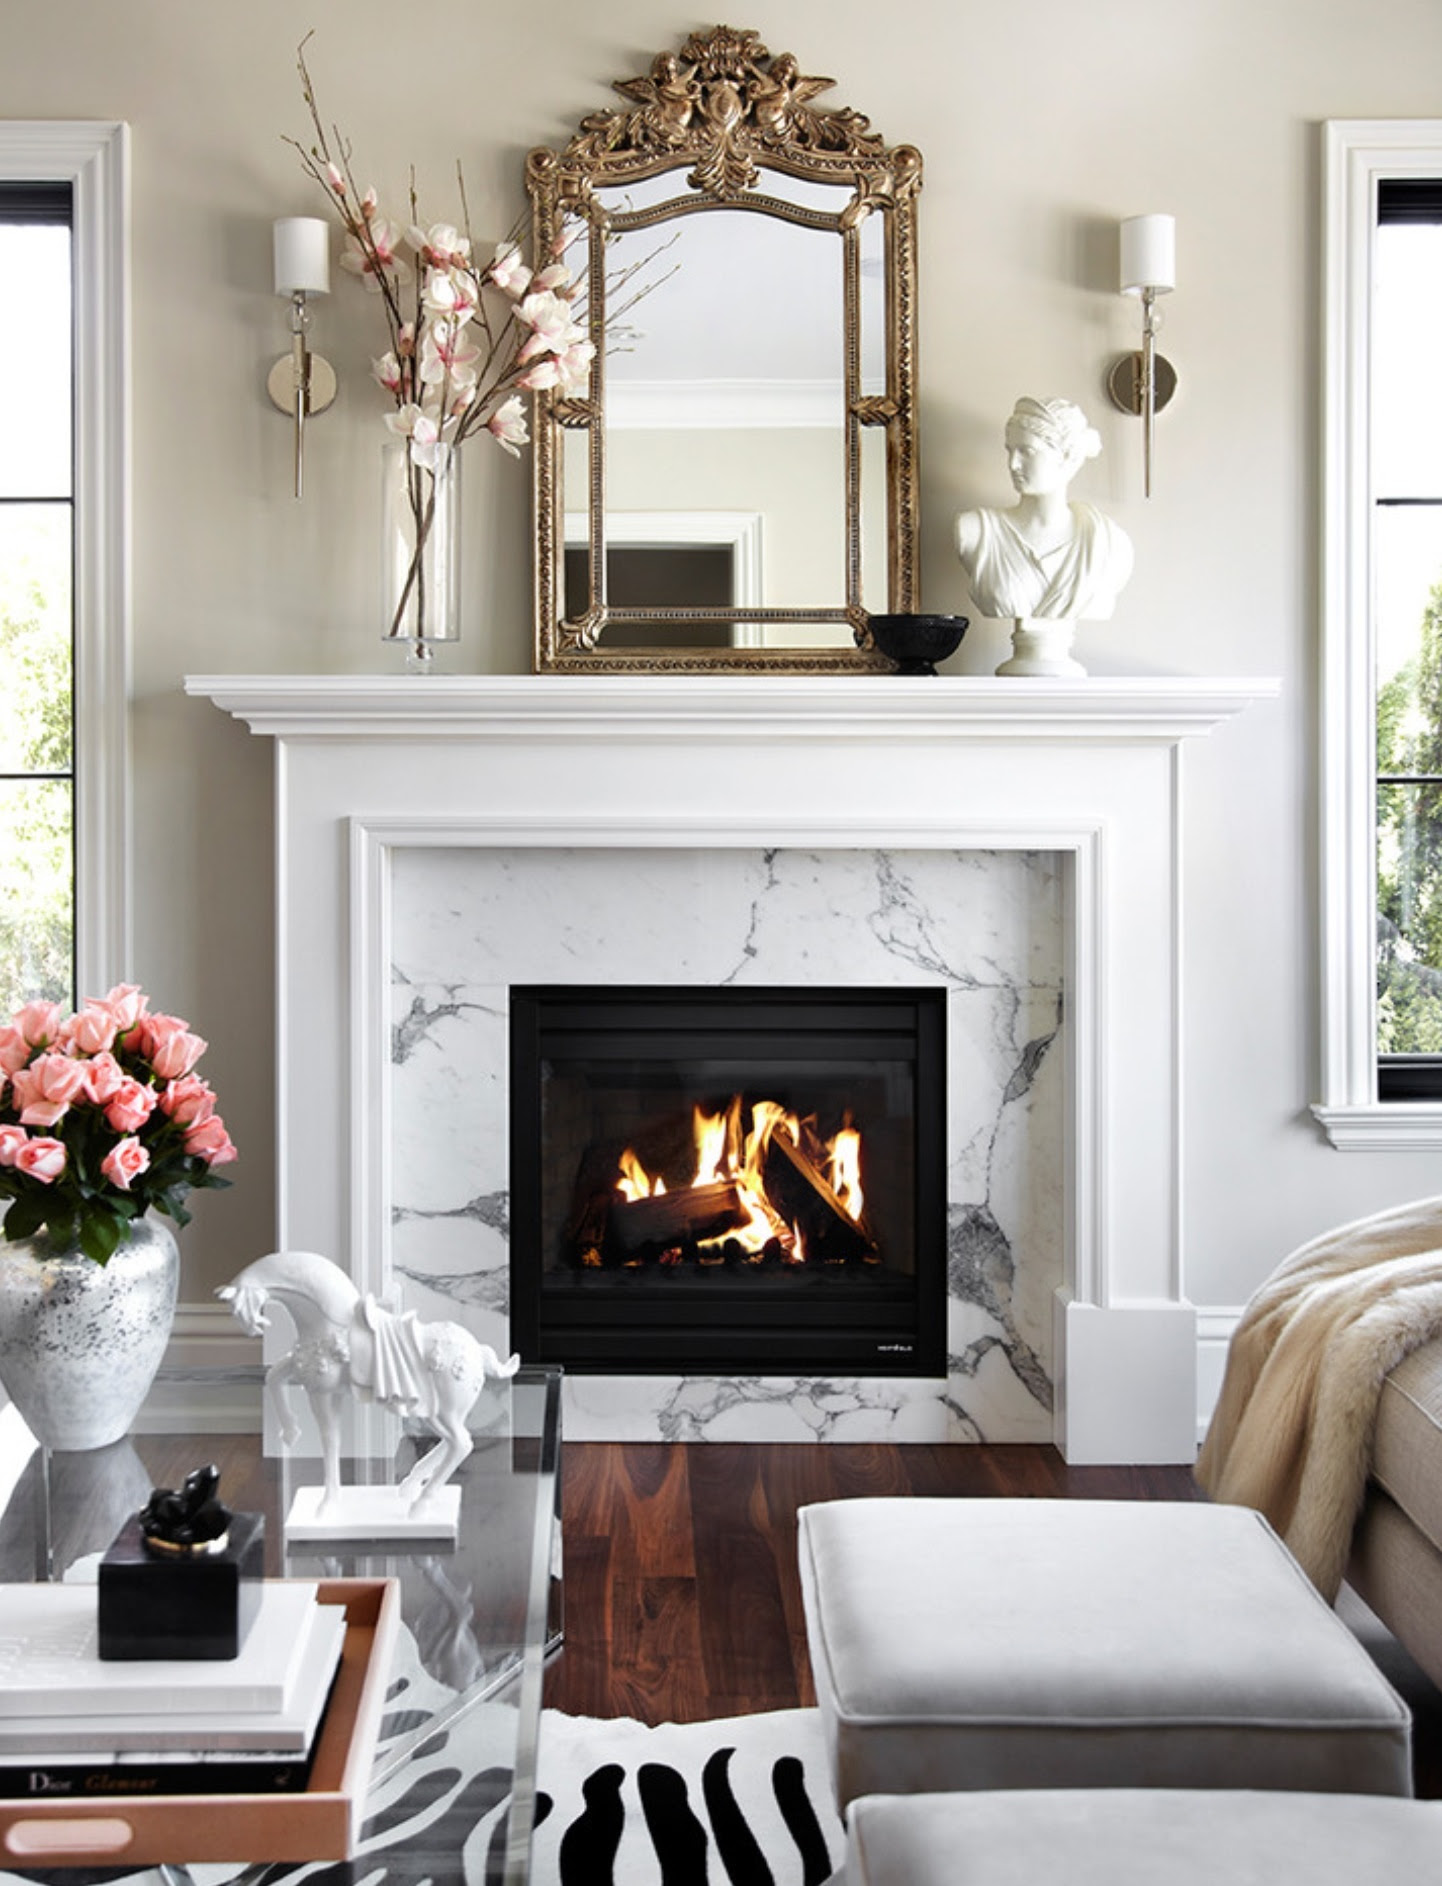 40 Beautiful Living Room Designs With Fireplace - Interior